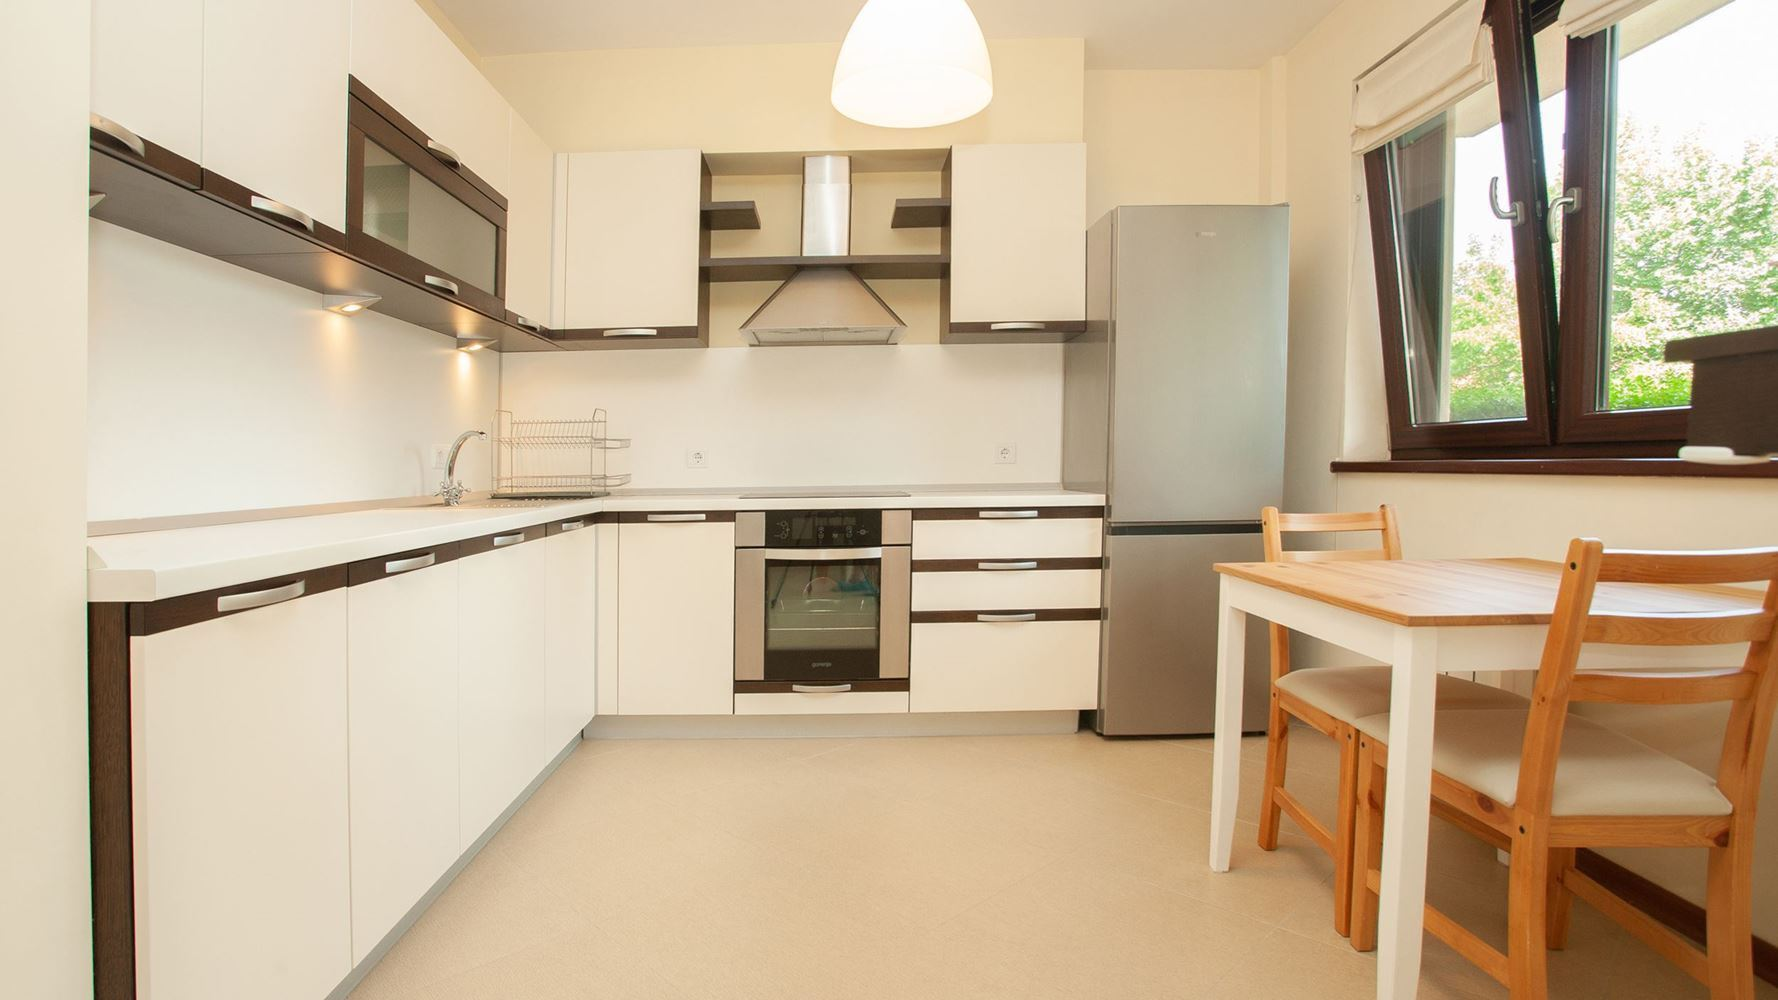 2-bedroom Apartment for Rent, Pancharevo